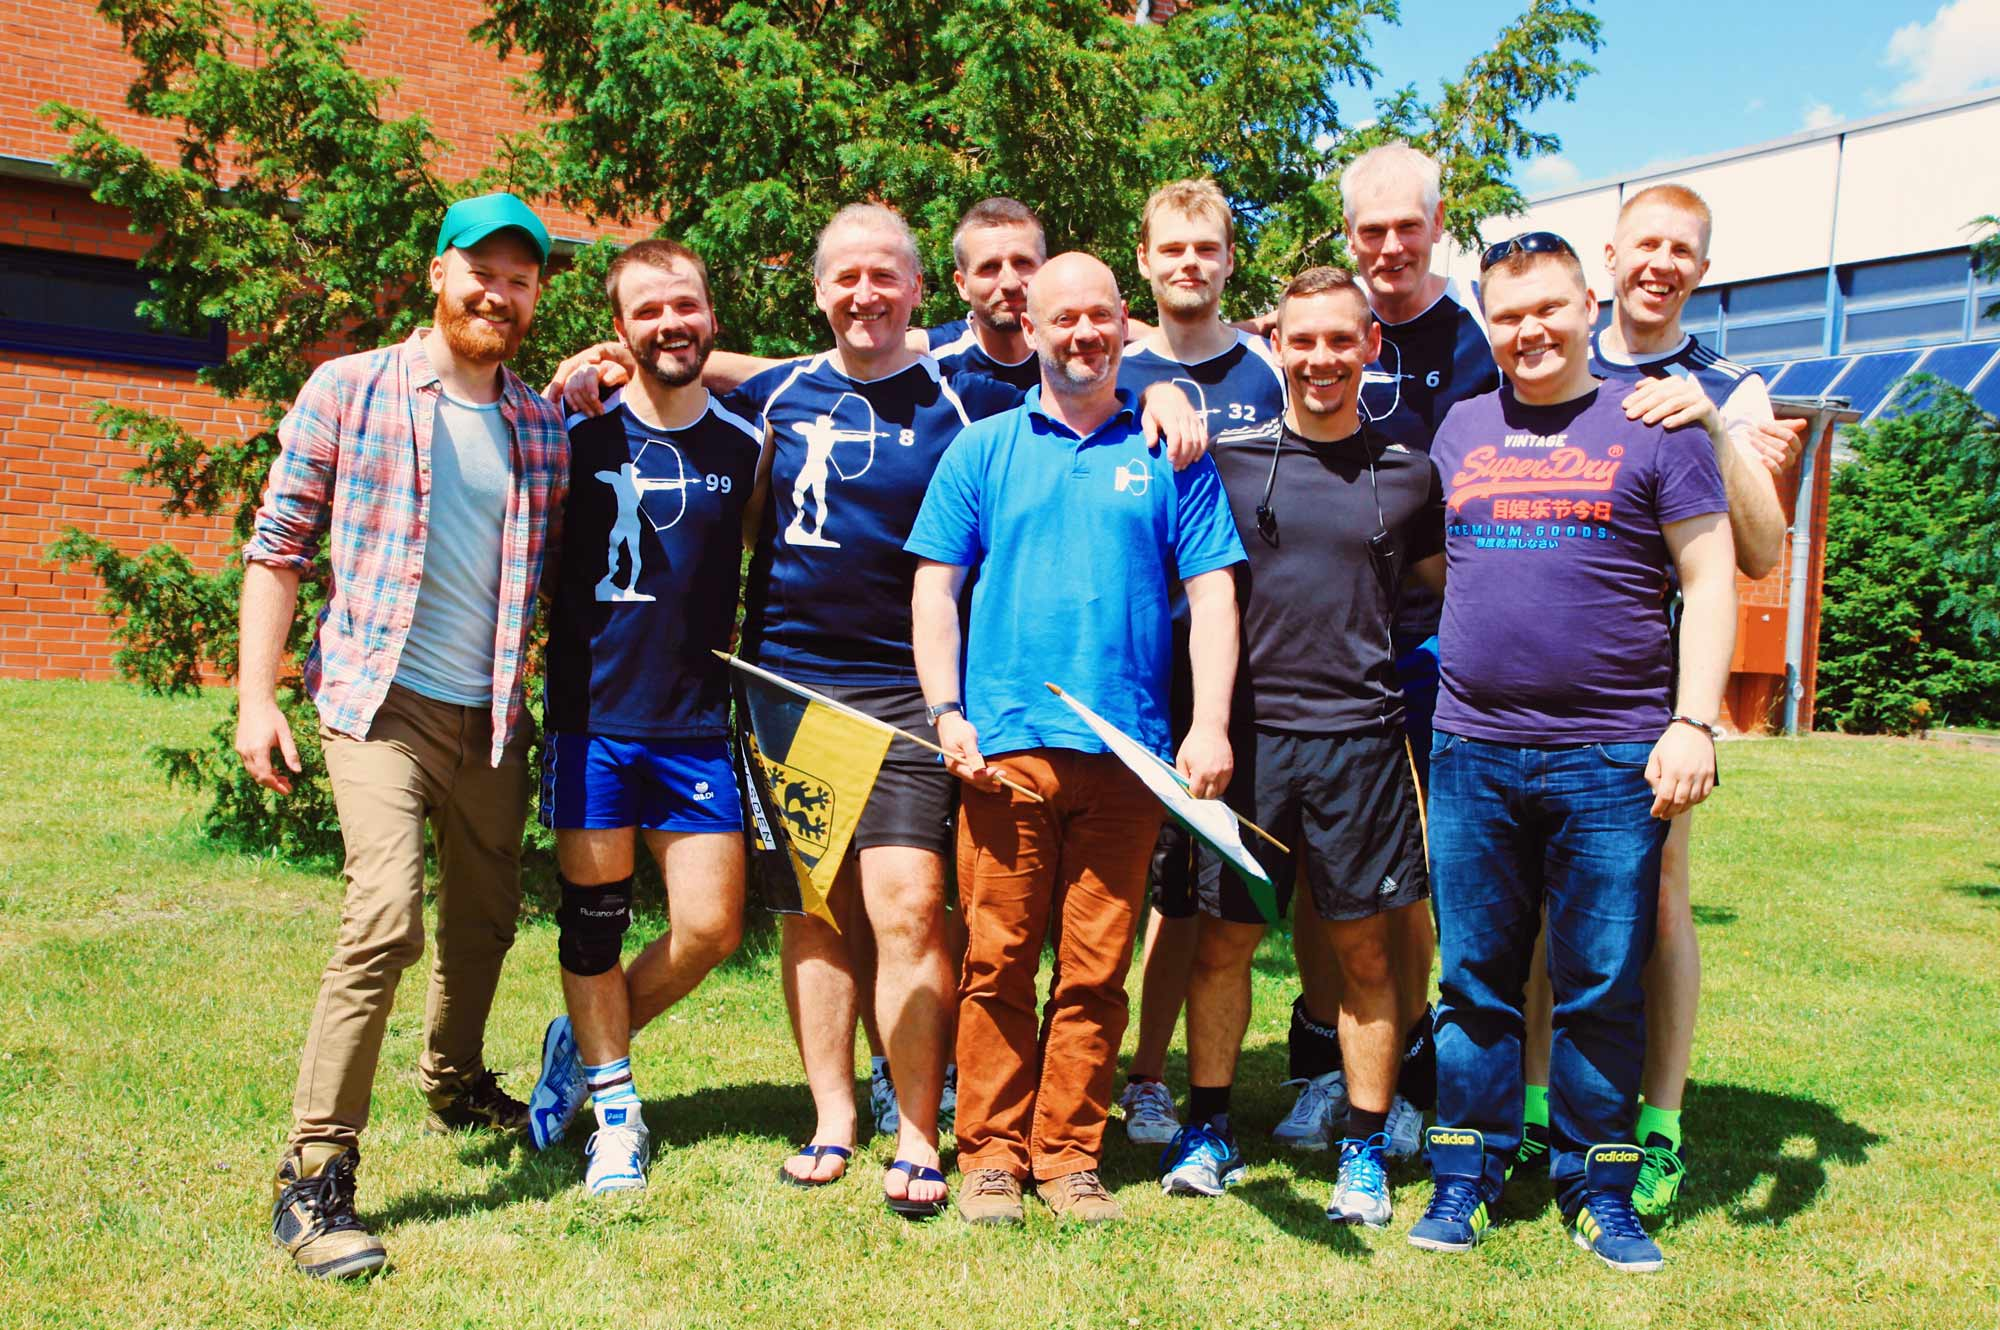 Gay Travel Berlin Goldelsen-Cup Volleyball Tournament © CoupleofMen.com